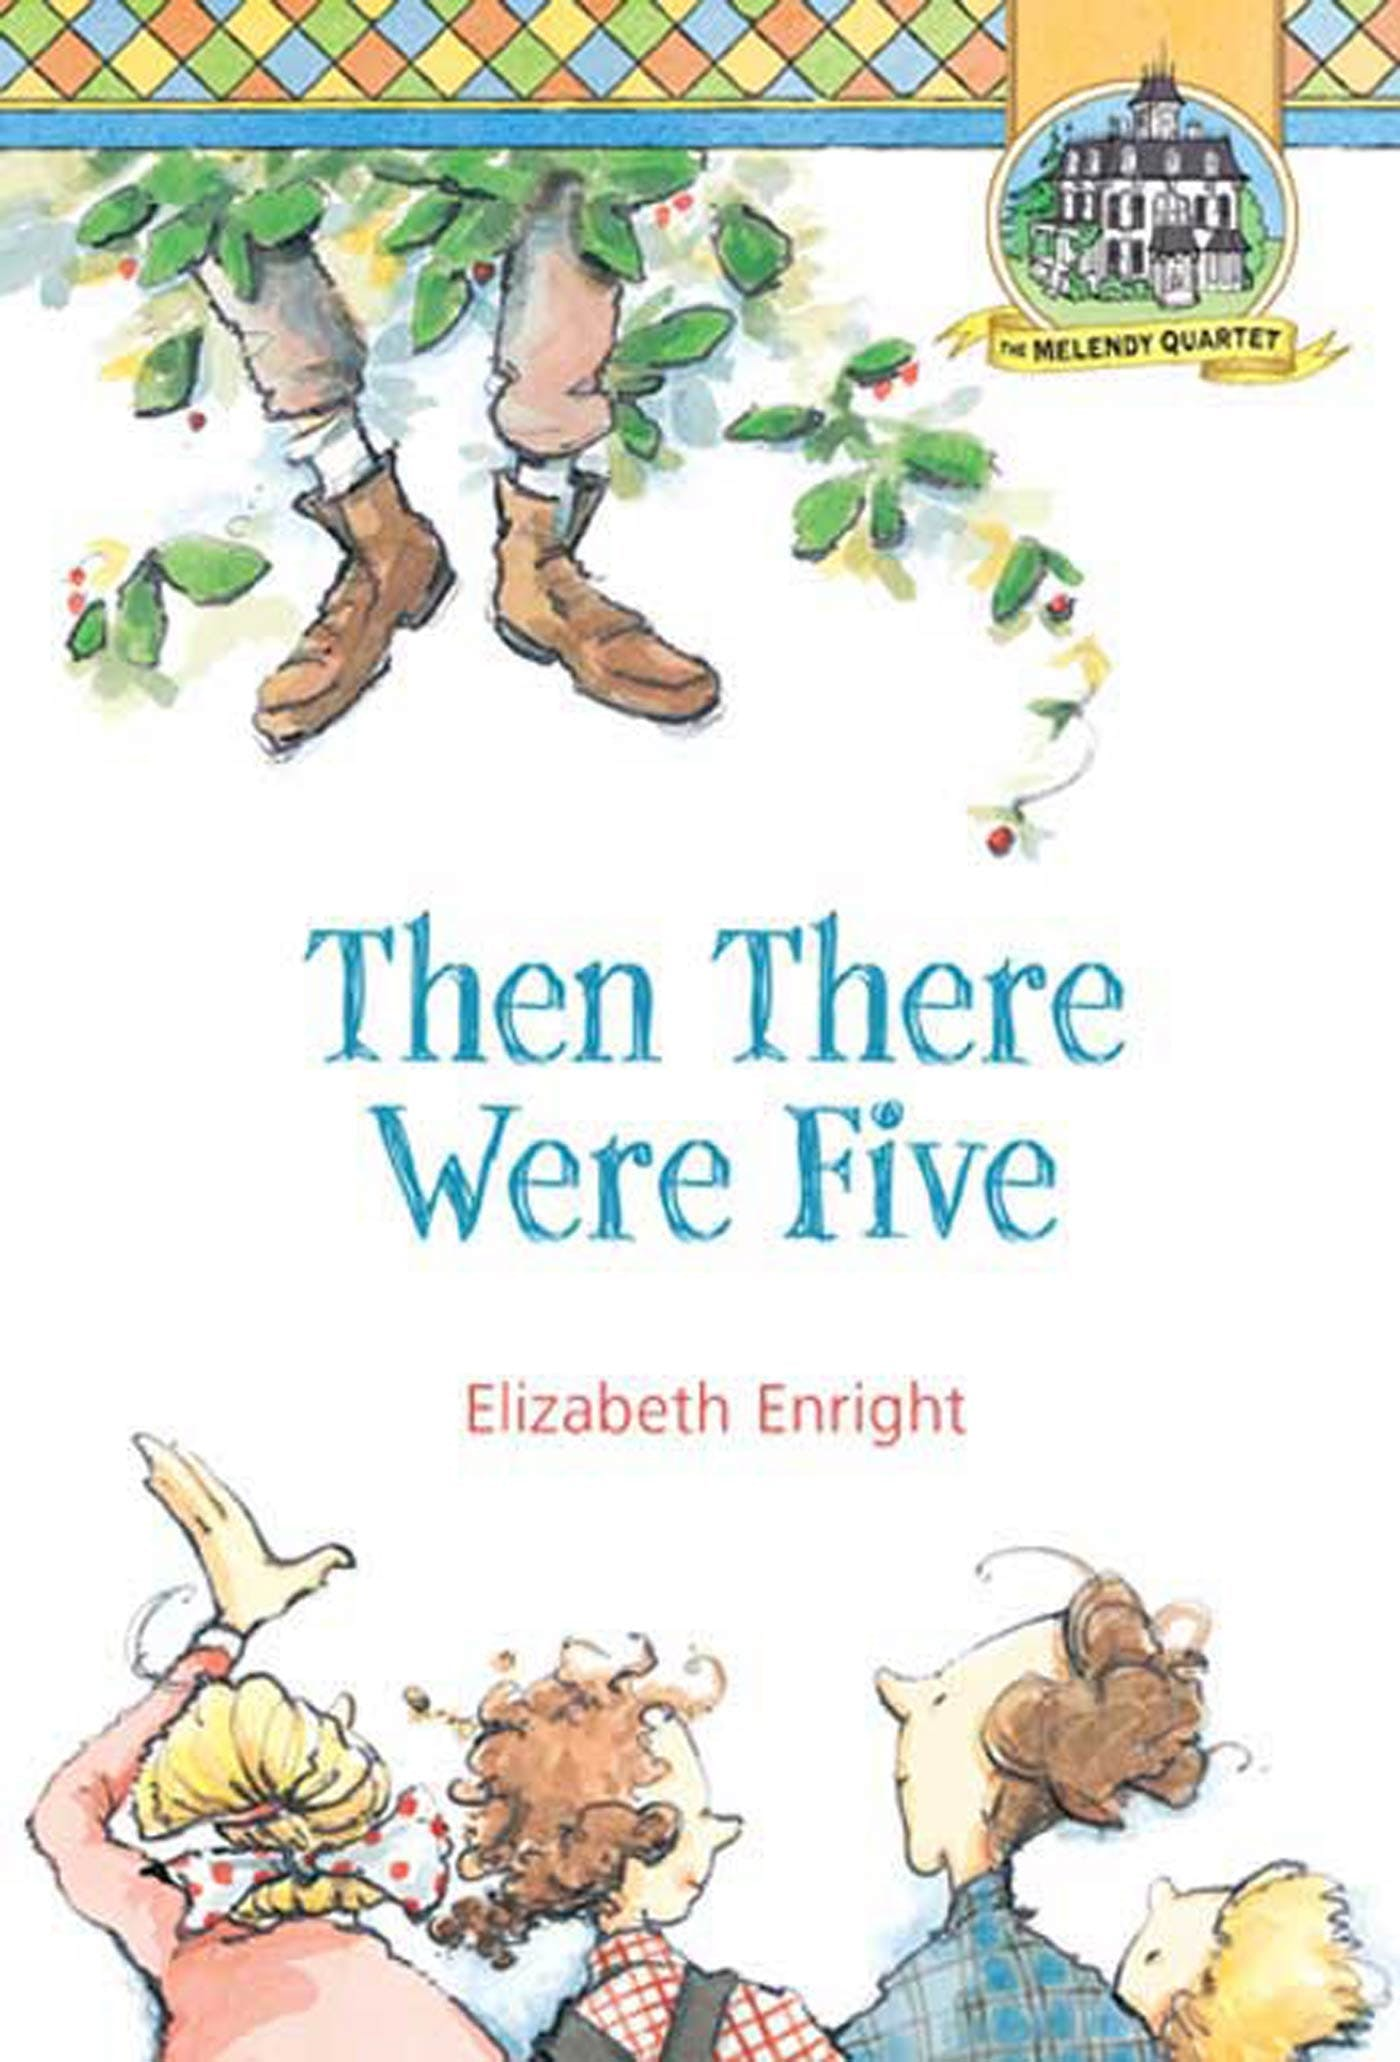 Image of Then There Were Five